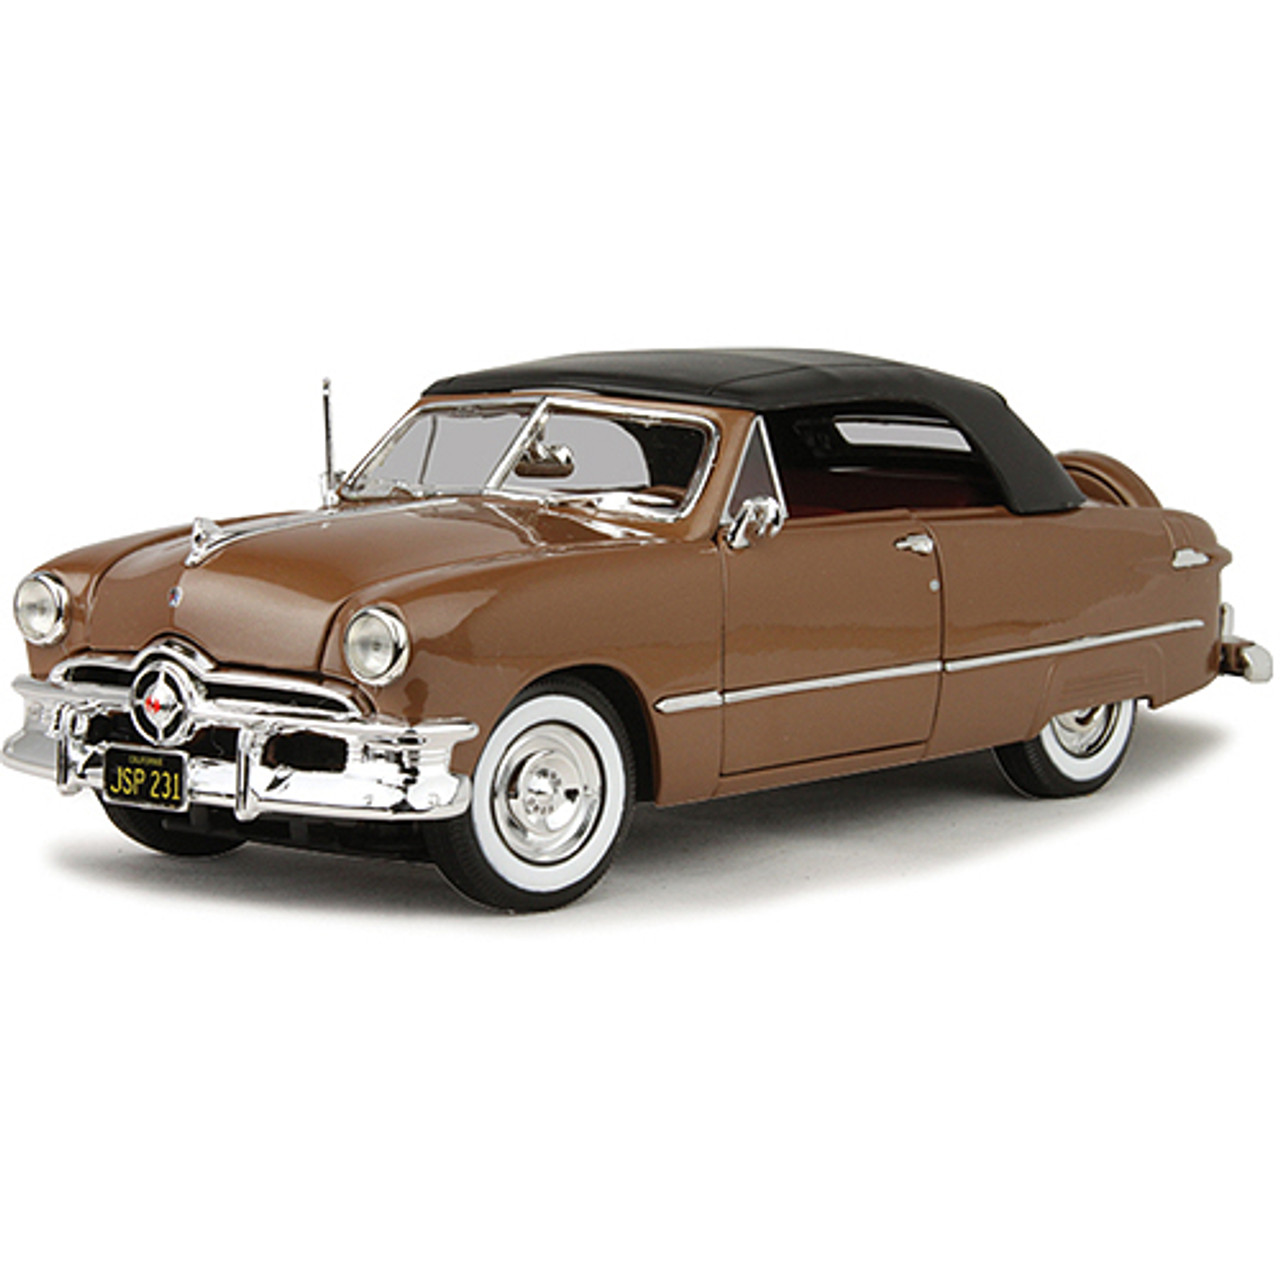 1950 Ford Custom Deluxe Convertible 1 18 Scale Diecast Model By Maisto Collectable Diecast